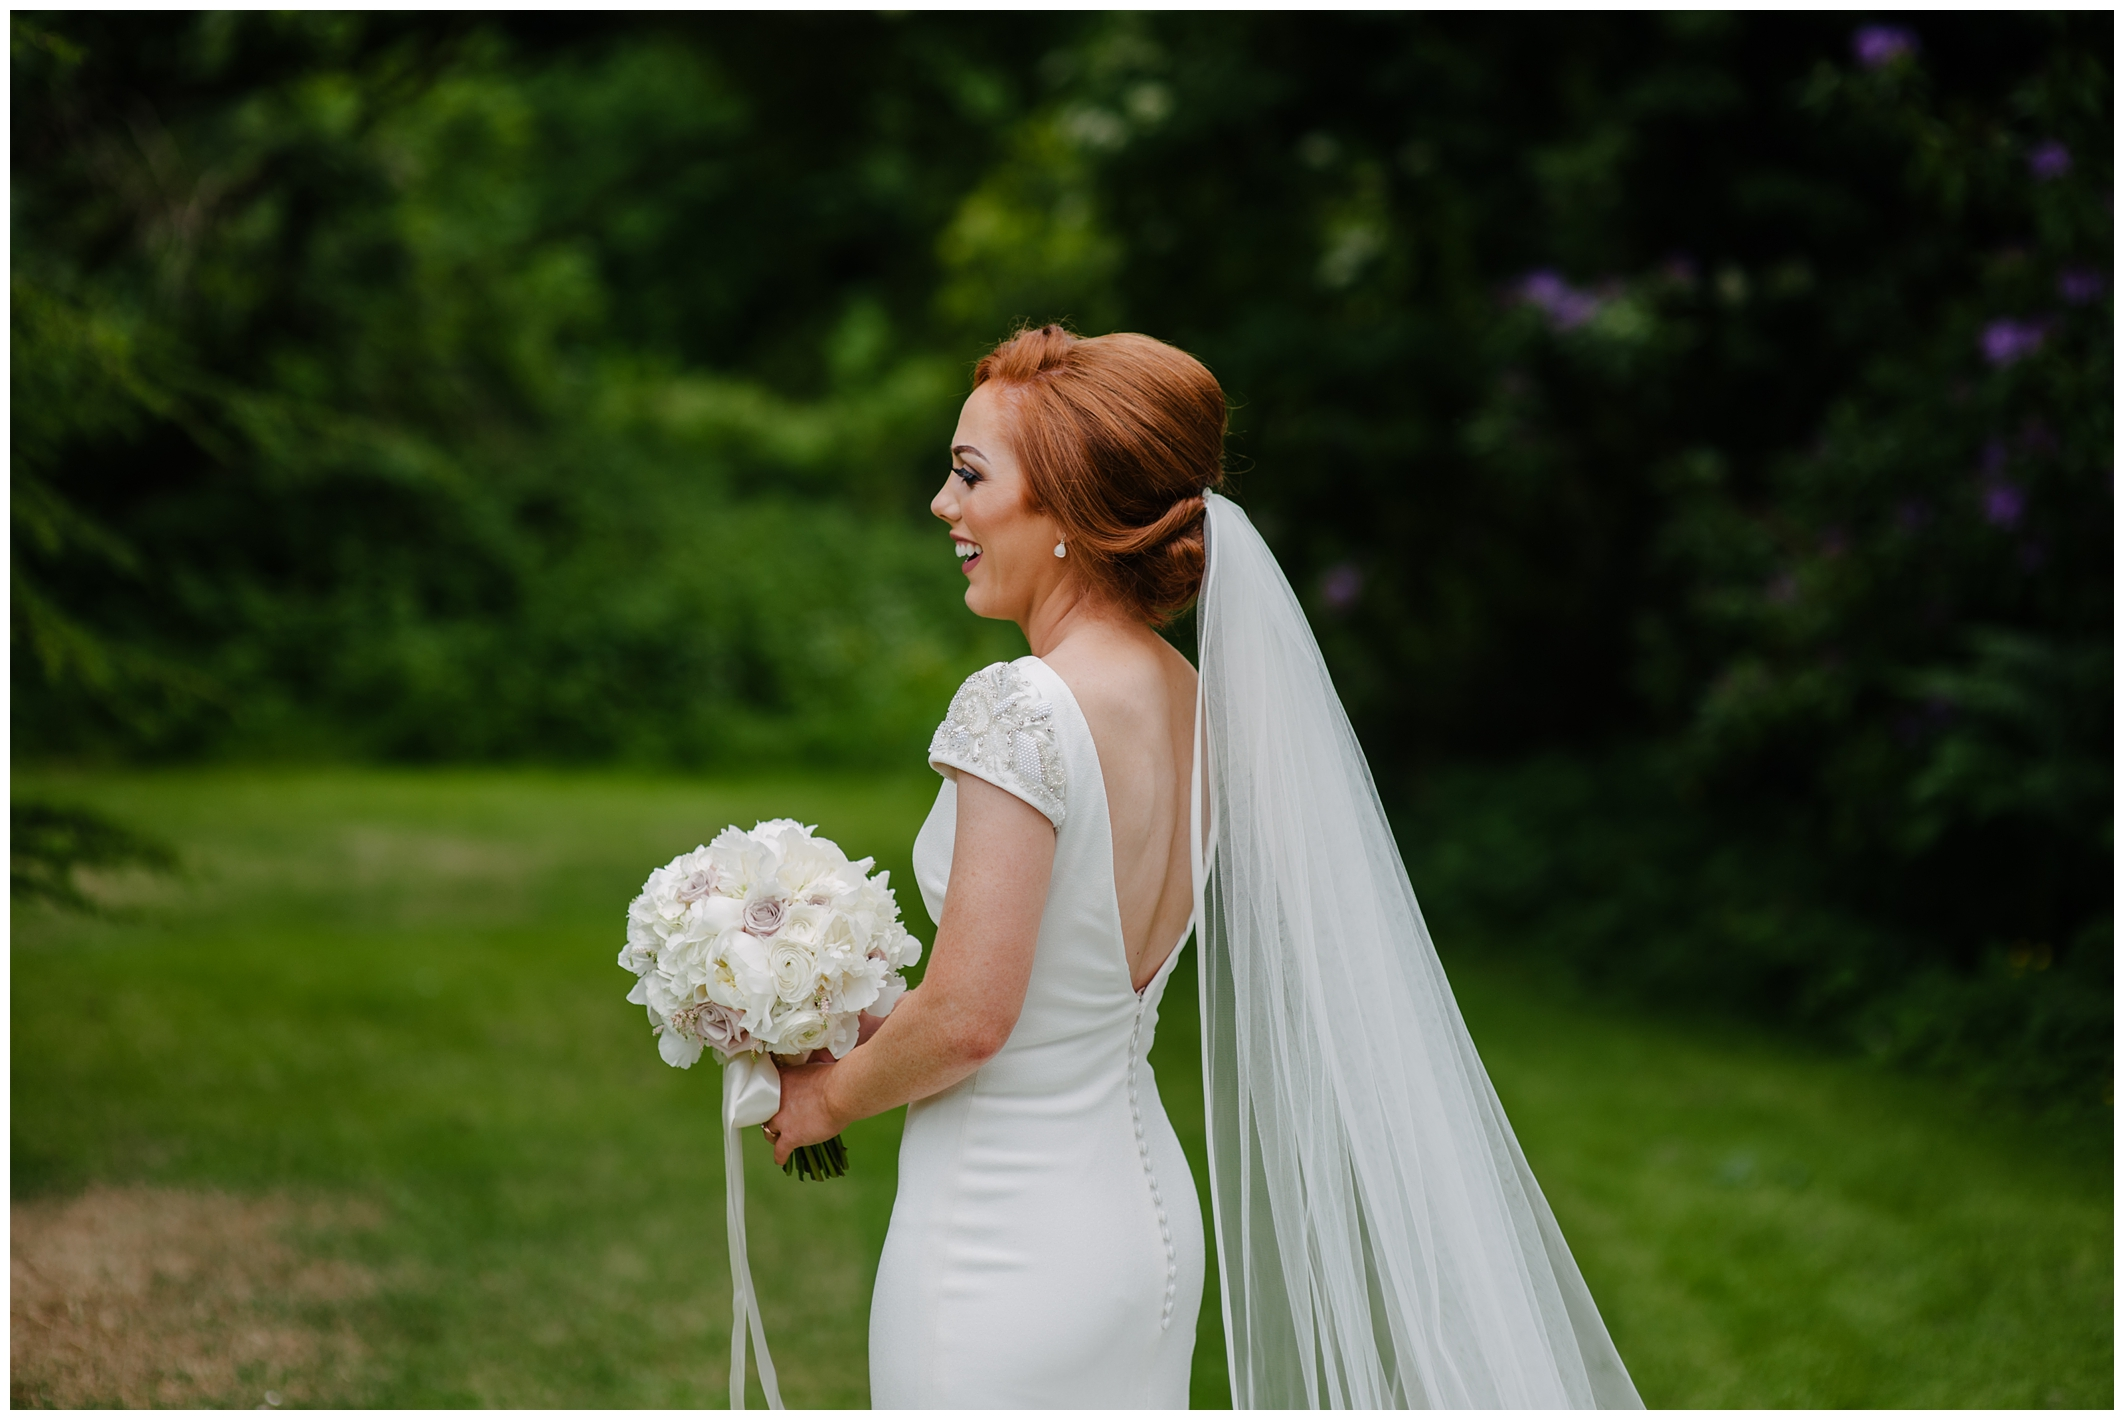 sinead_emmet_farnham_estate_wedding_jude_browne_photography_0132.jpg